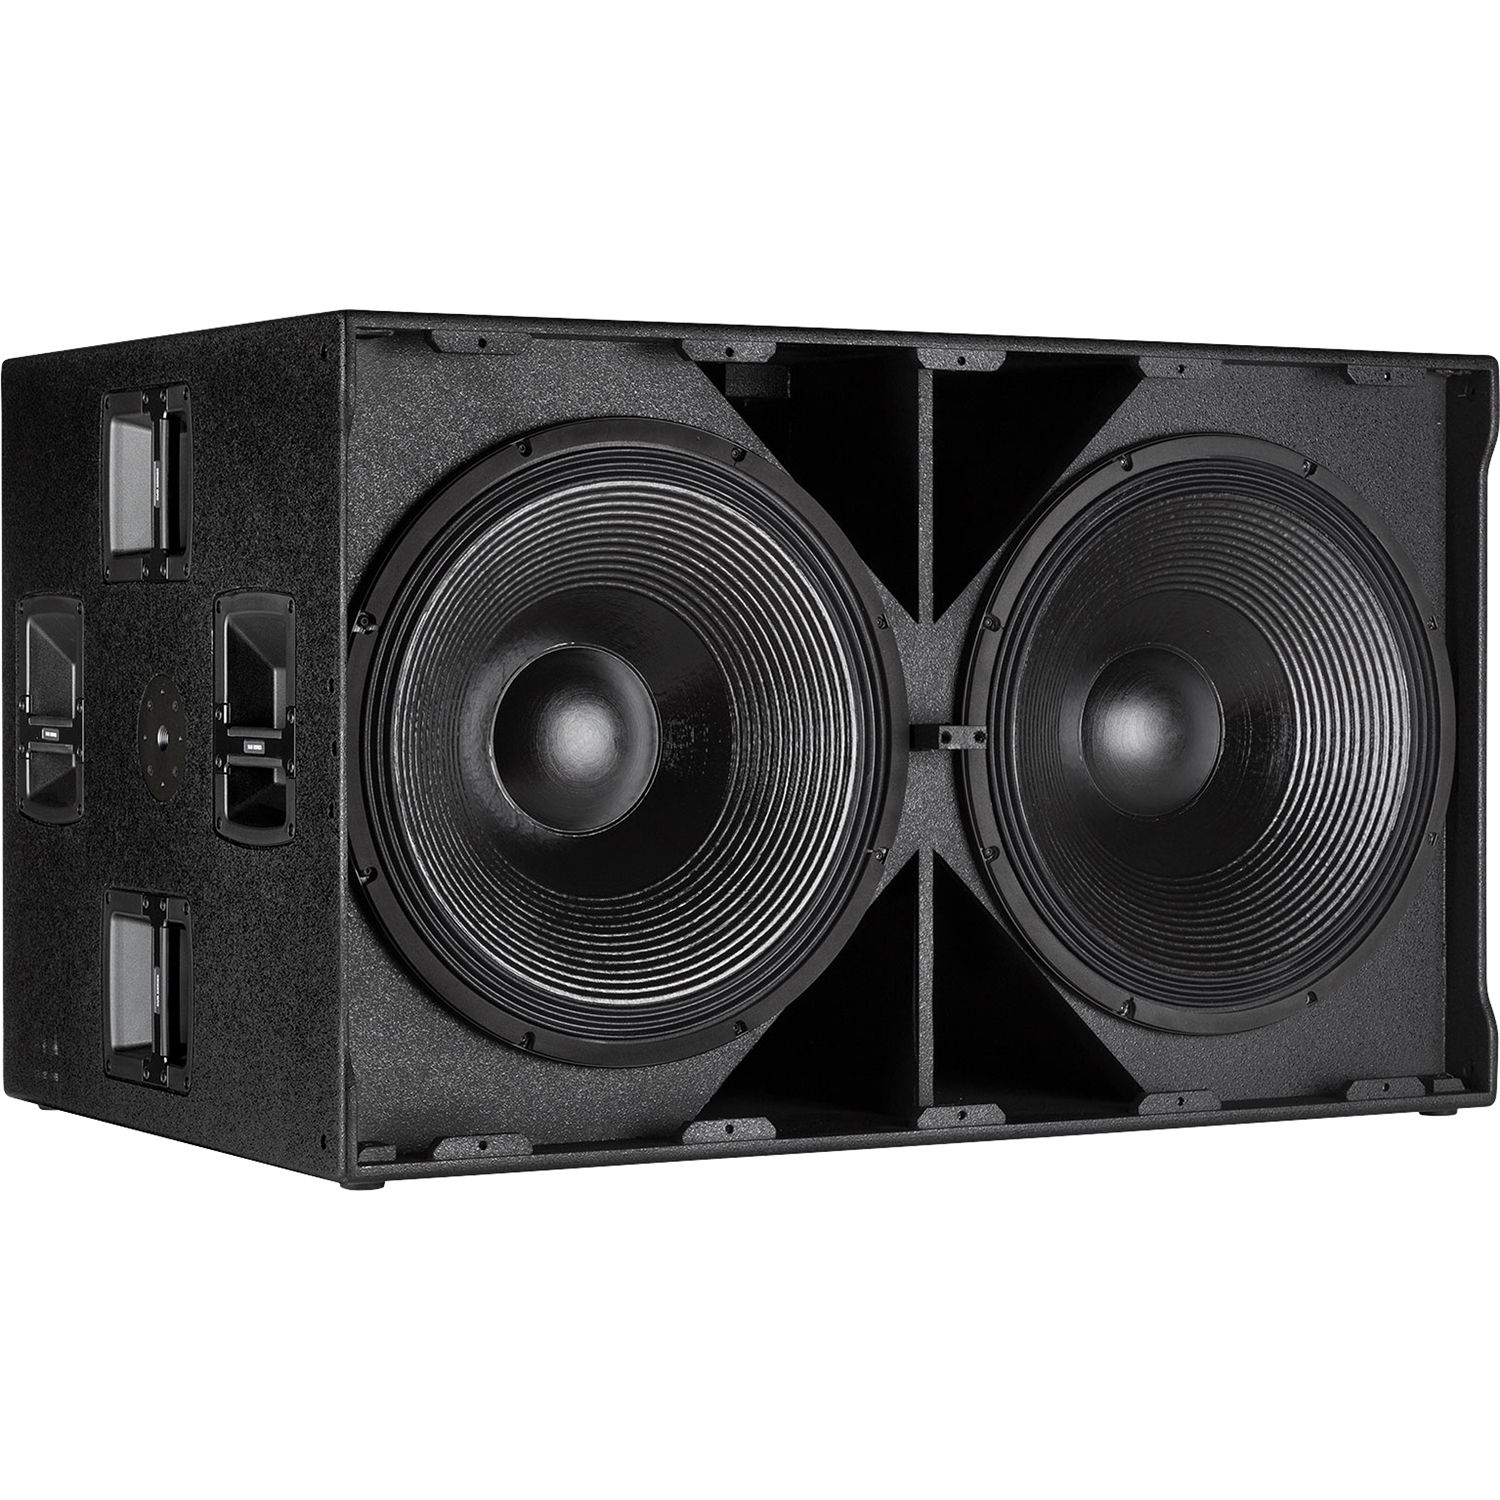 RCF SUB 9006-AS | Active Dual 18 Inch Subwoofer | Loudspeakers